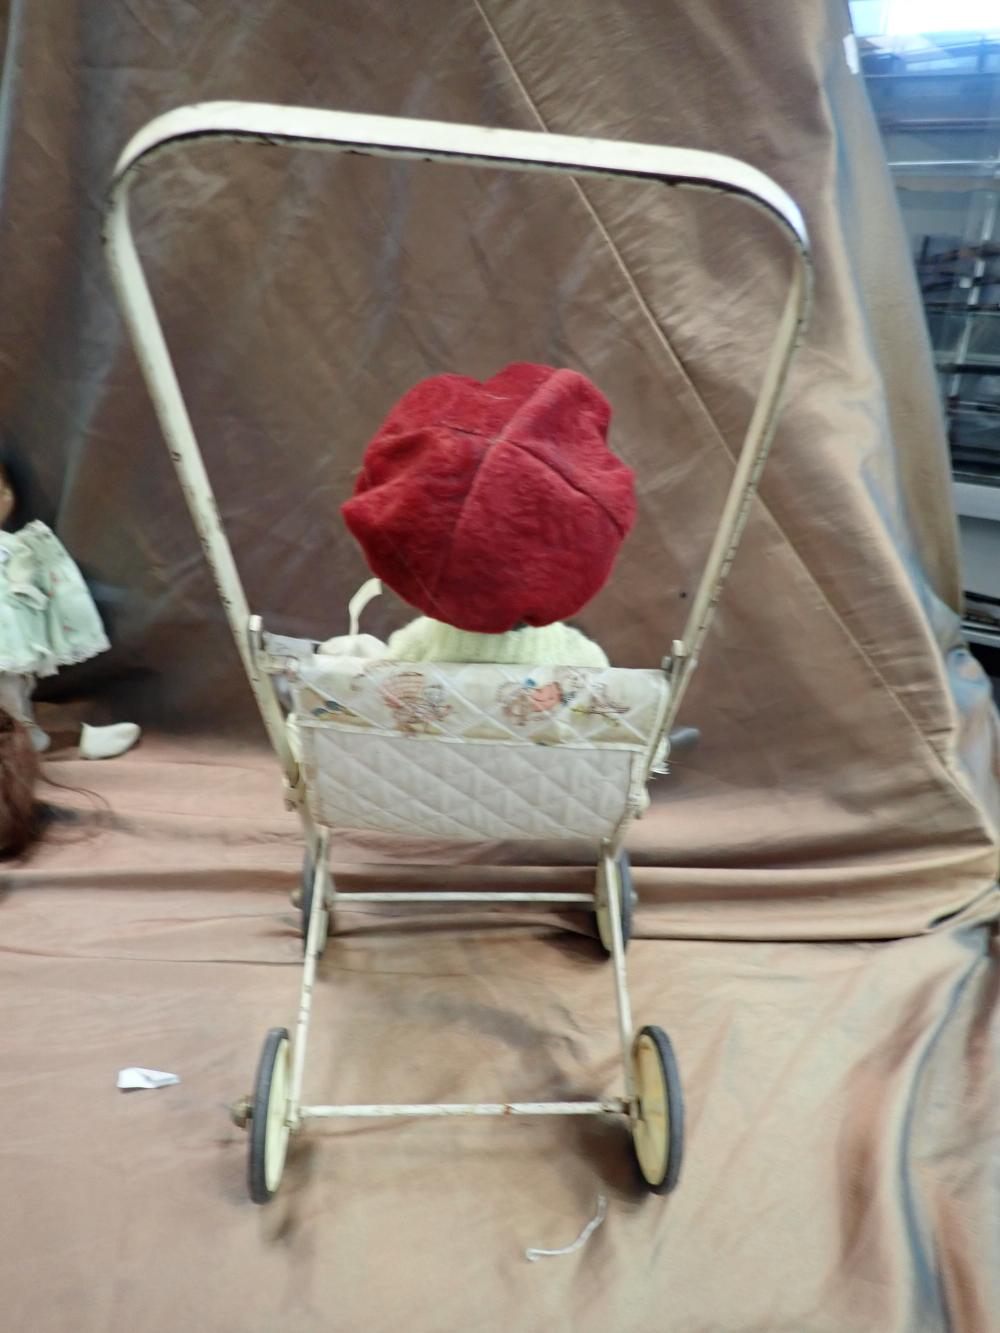 "18"" H X 8"" W DOLLS STROLLER METAL & PLASTIC WITH A 16"" REPRODUCTION PORCELAIN BROWN GIRL DOLL"